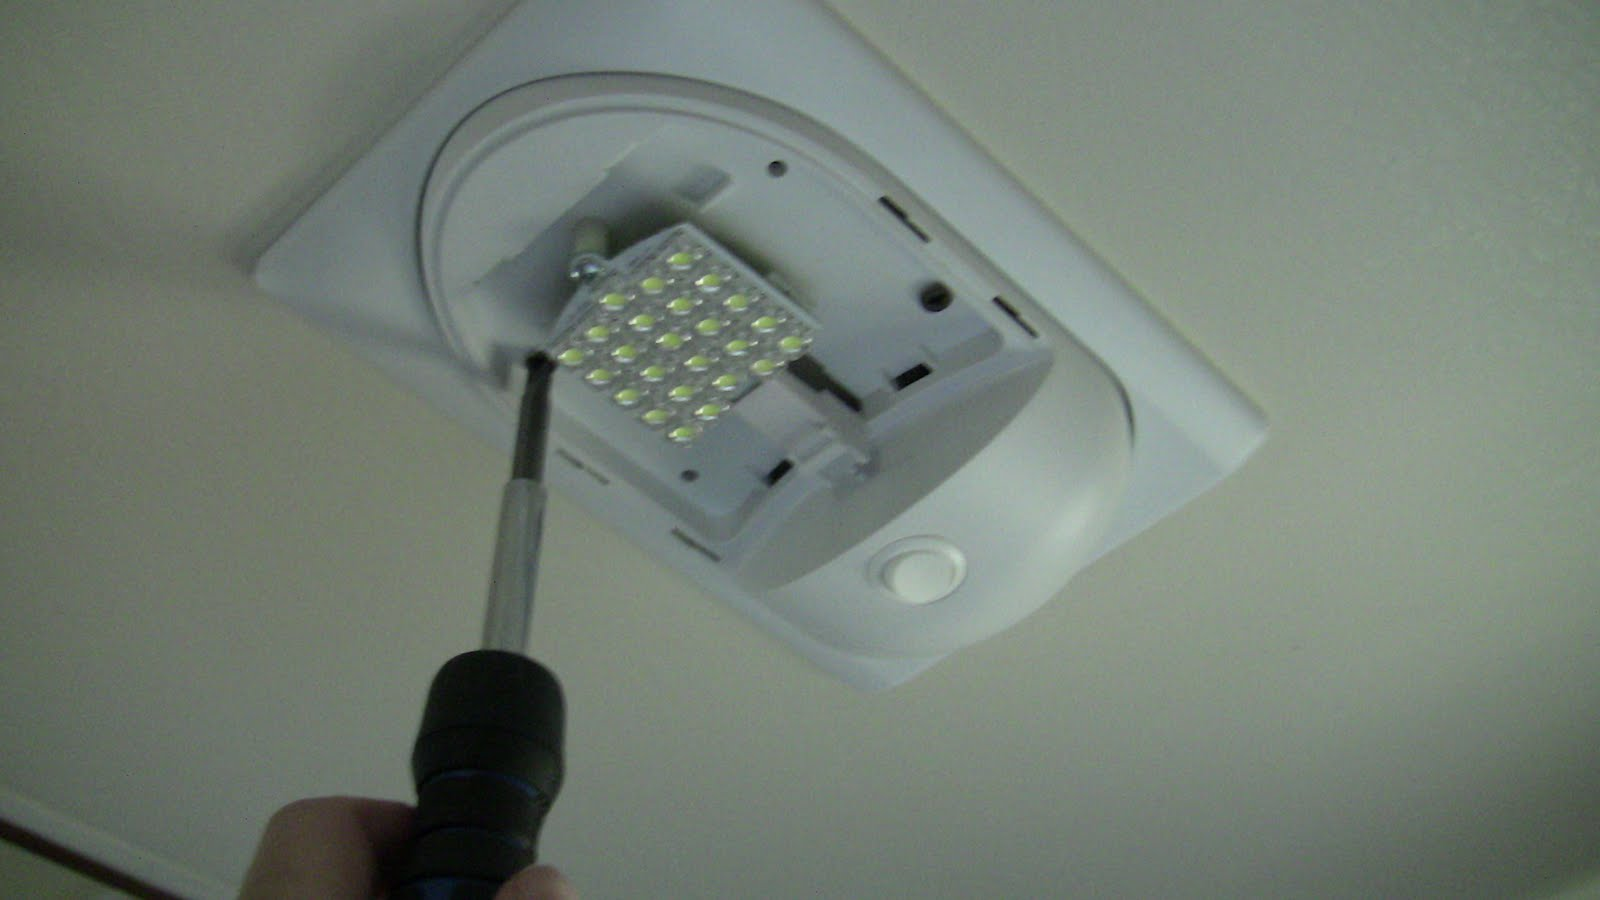 Replacing RV Incandescent Light Fixture with LED Light Fixture